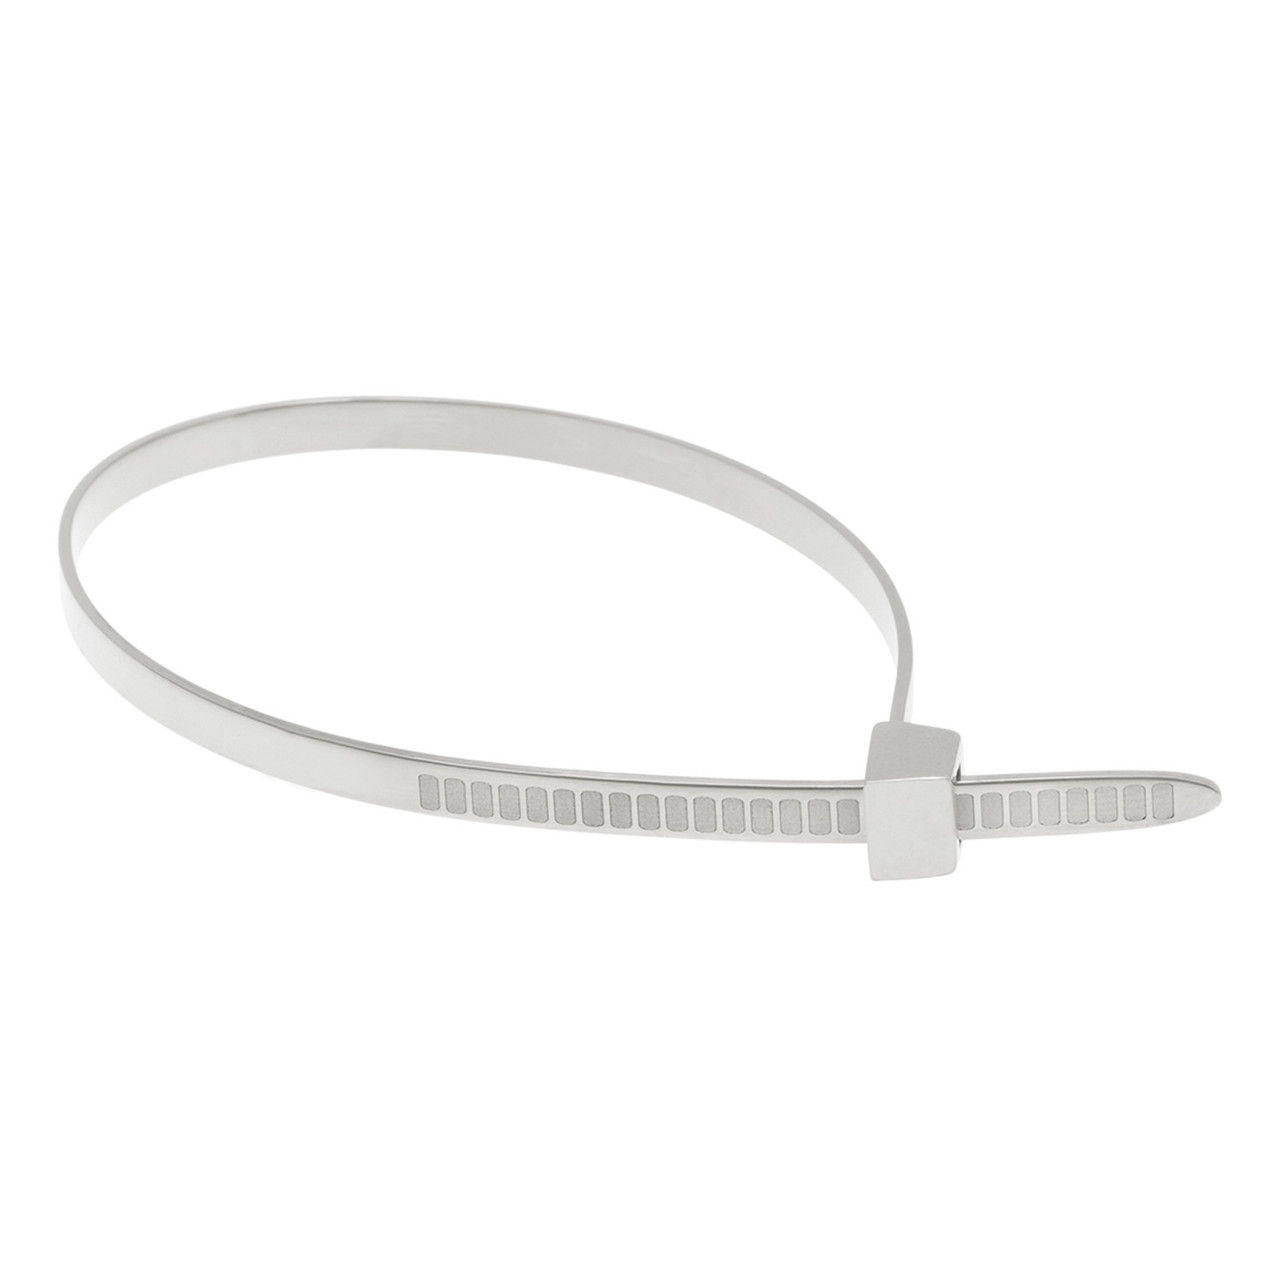 Trade Show - Zip Ties - White